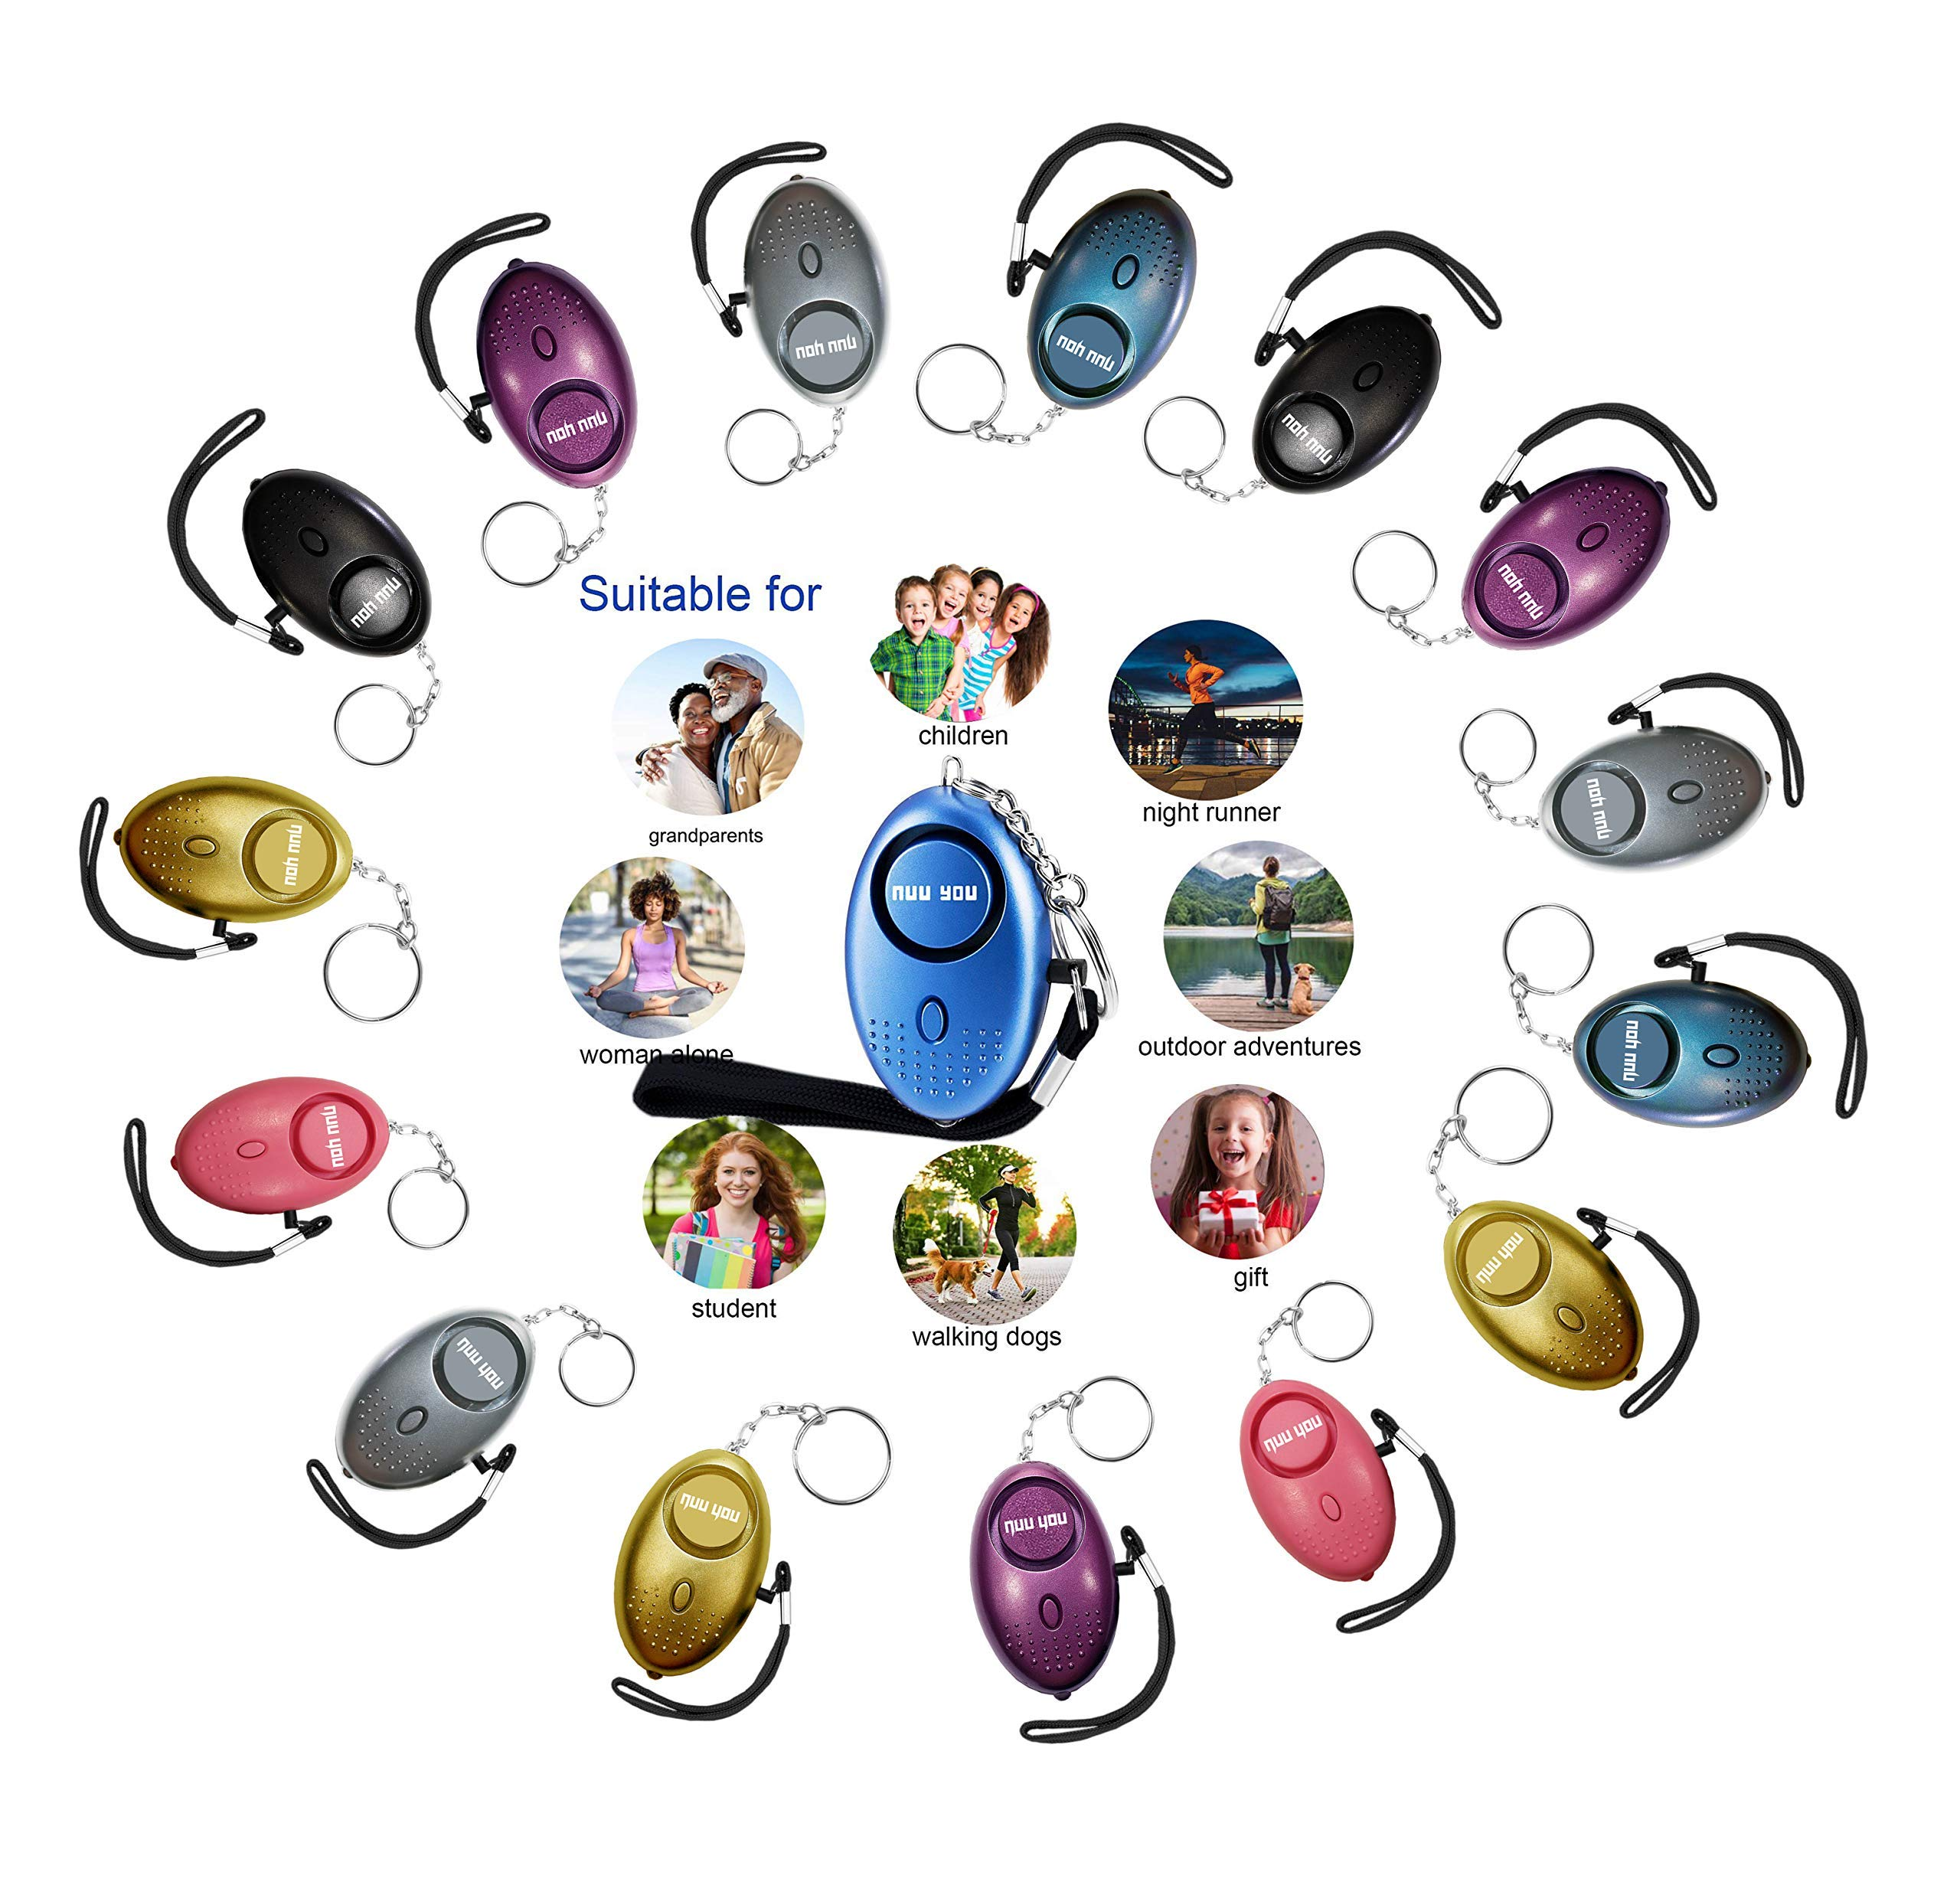 Personal Alarms for Woman Siren 140 DB with LED Light (4 Pack) Small Safety Sound Alarm Keychain for Personal Alarm Women/Kids/Girls/Elderly Self Defense Device Policeman Recommend (Multicolor 15PACK) by Nuu You